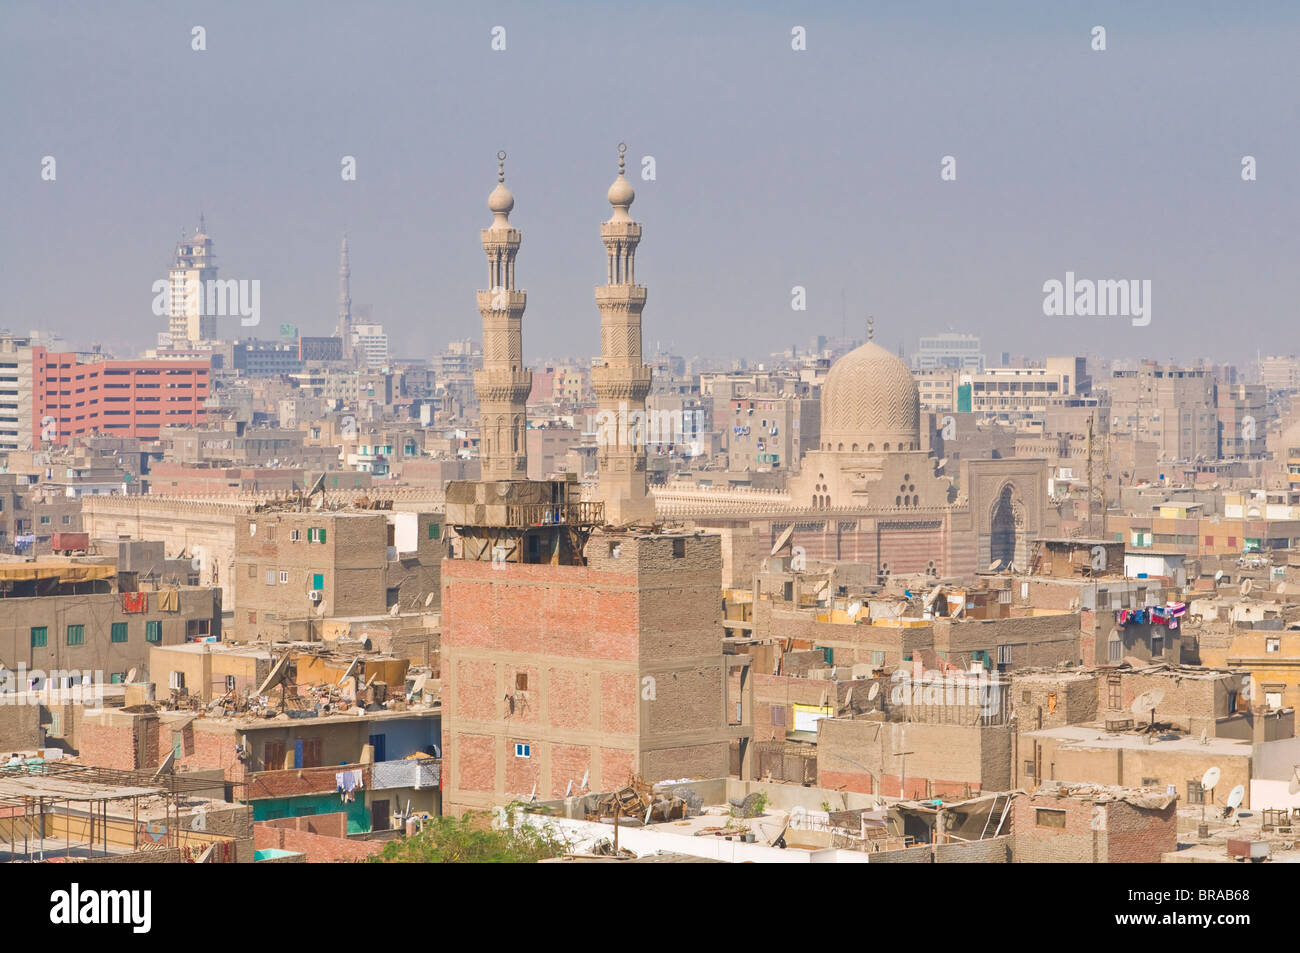 View over the roofs of the old city, Cairo, Egypt, North Africa, Africa - Stock Image